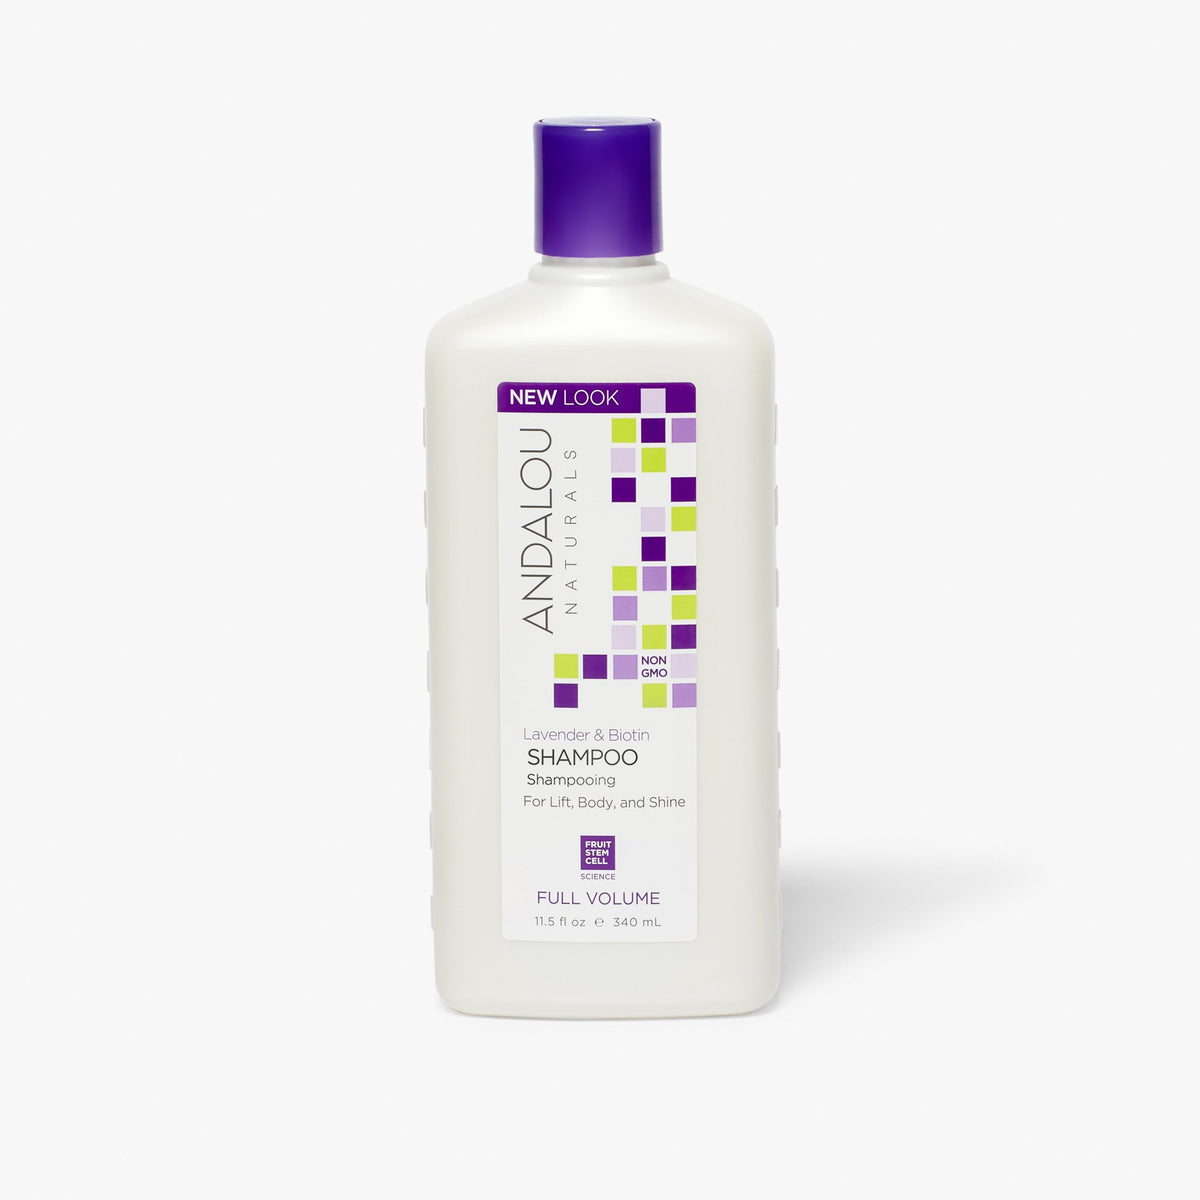 bottle of Andalou Naturals Lavender & Biotin Full Volume Shampoo